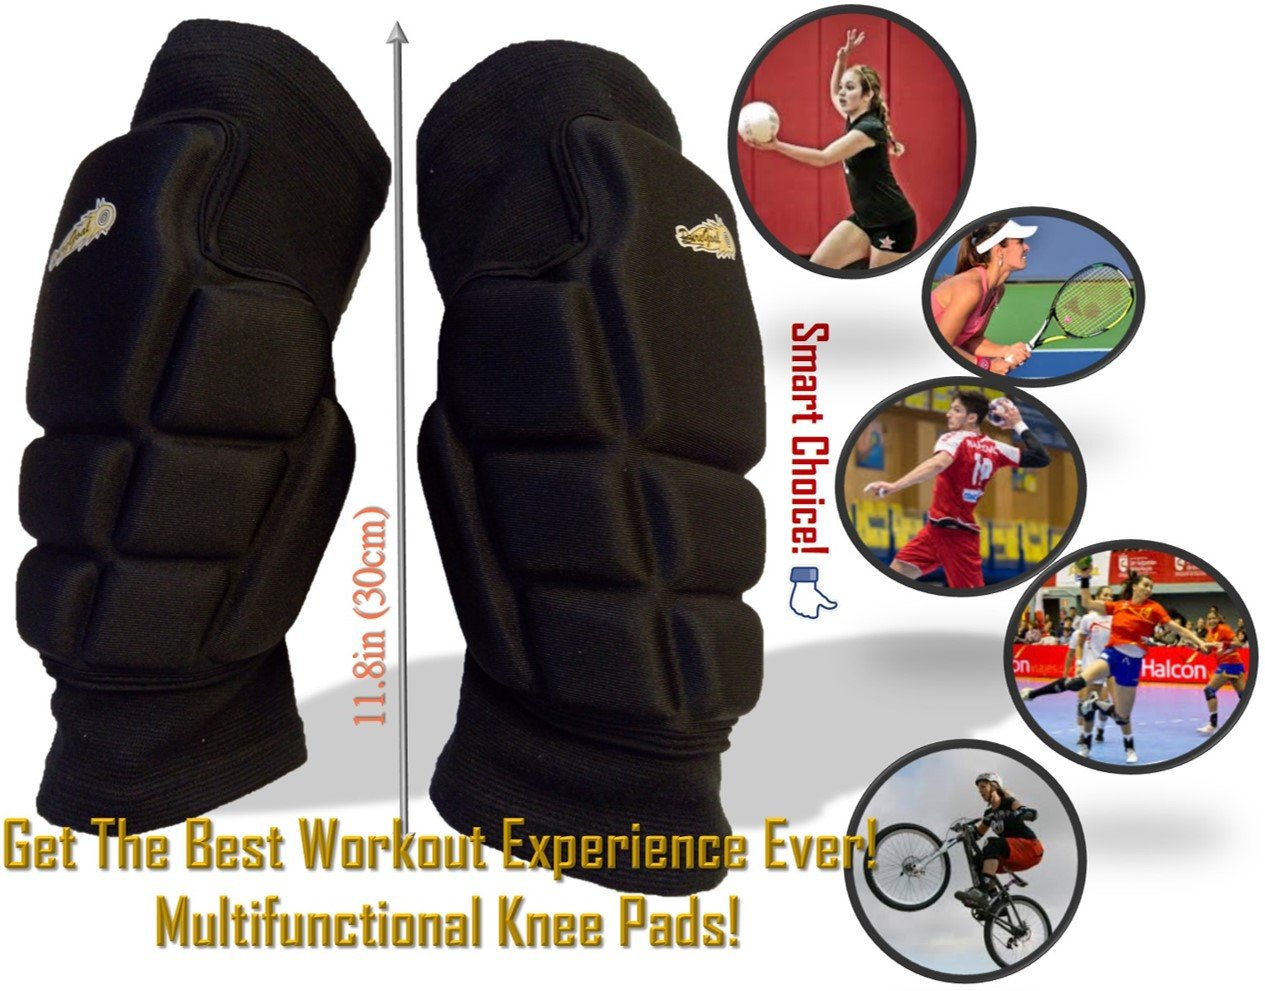 AB Roller Wheel and Knee Protectors Set for Abdominal Six Pack & Core Workout - Highly Cushioned Thick and Breathable Pads Pair to Support the Rollout Crunch Machine Home Gym Training - PureGoal